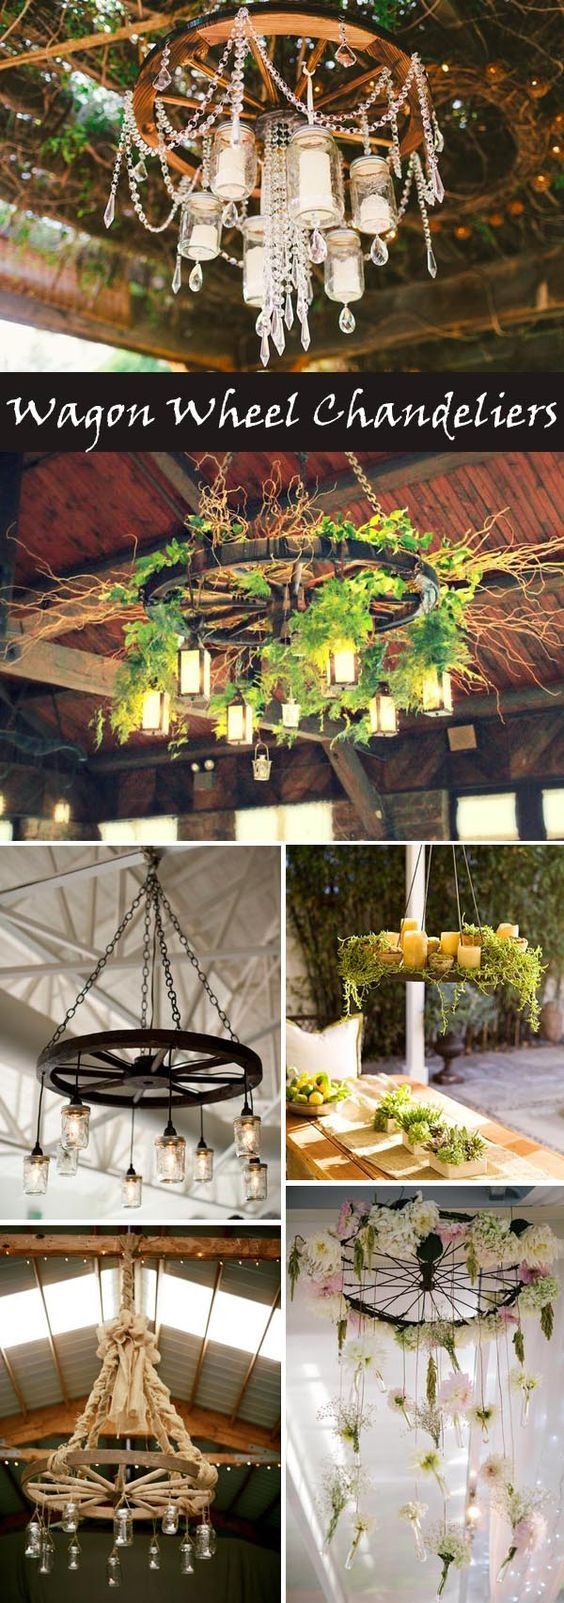 Make your own wagon wheel chandelier weddings pinterest wagon make your own wagon wheel chandelier weddings pinterest wagon wheel chandelier wheel chandelier and wagon wheels arubaitofo Image collections